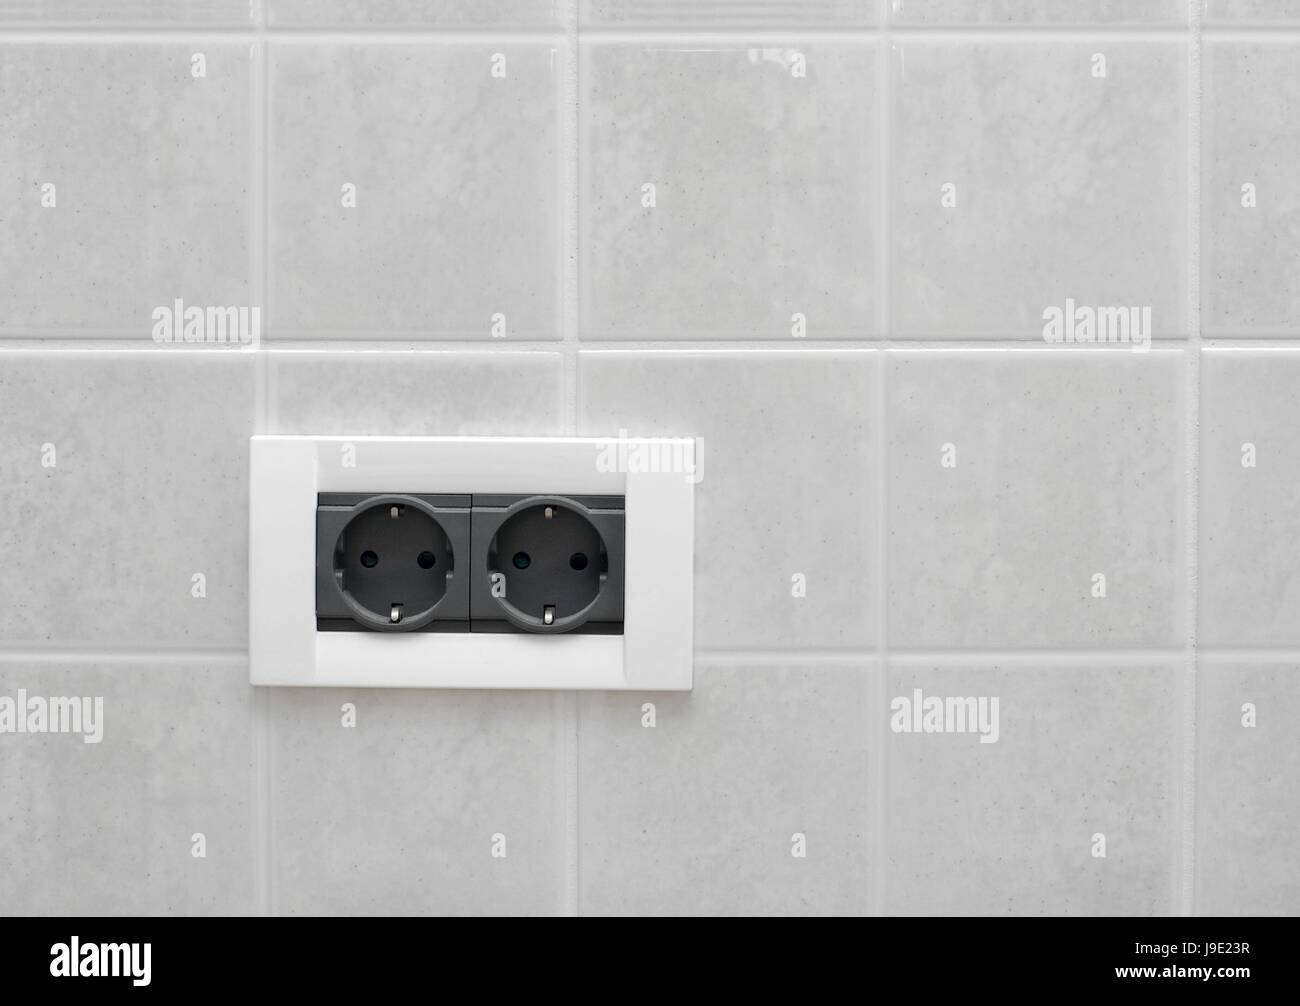 wall, electric, outlet, socket, tile, double, white, plug, house ...